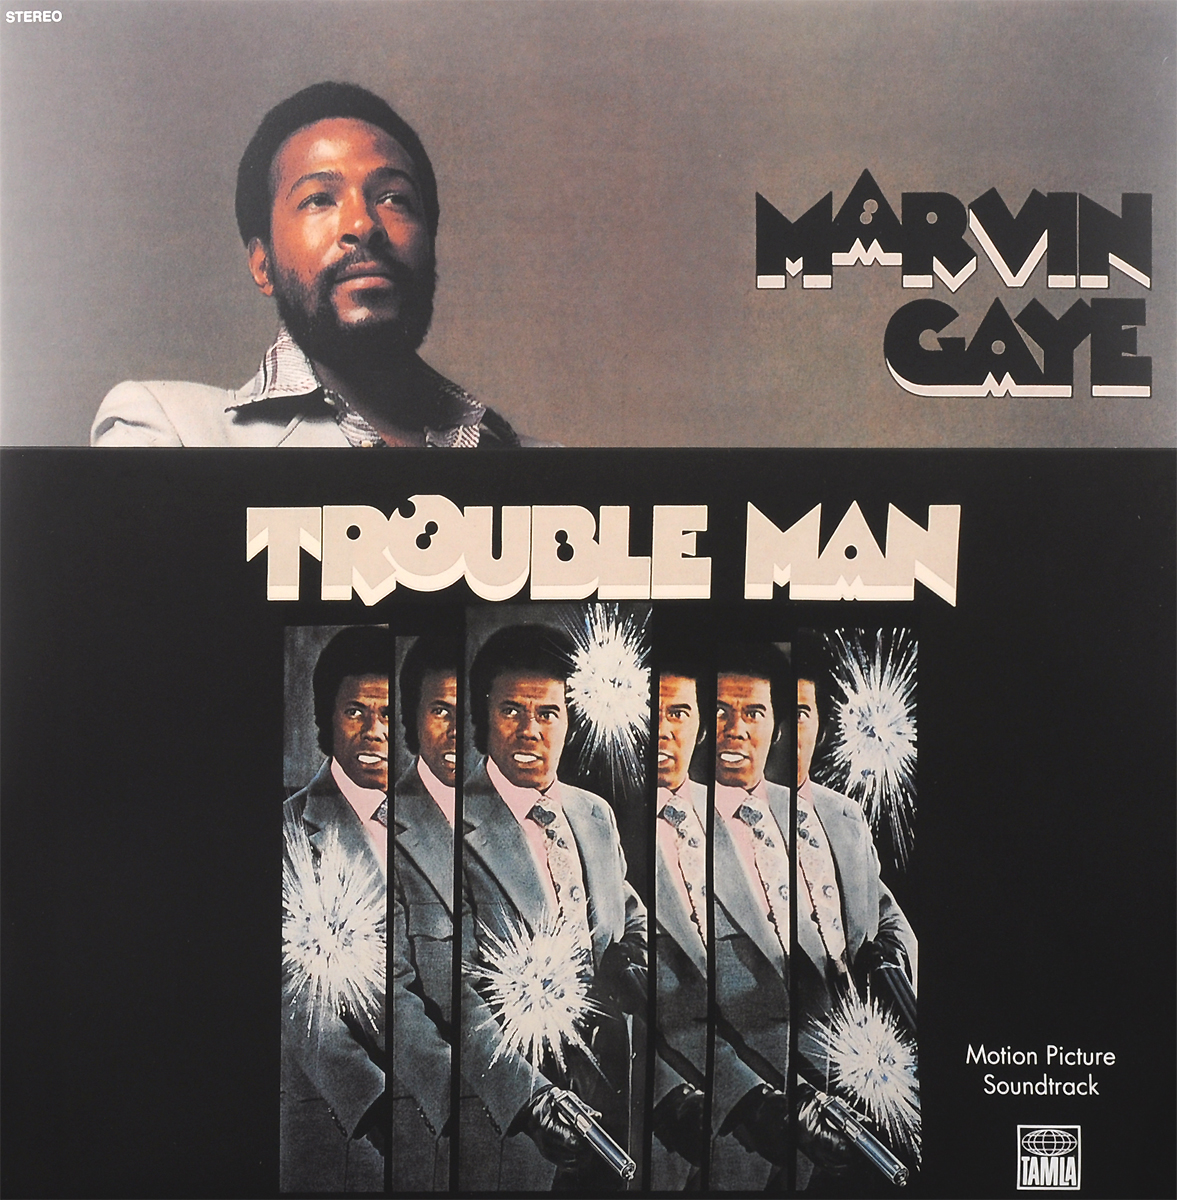 Марвин Гэй Marvin Gaye. Trouble Man. Motion Picture Soundtrack (LP) leonard cohen i m your man motion picture soundtrack